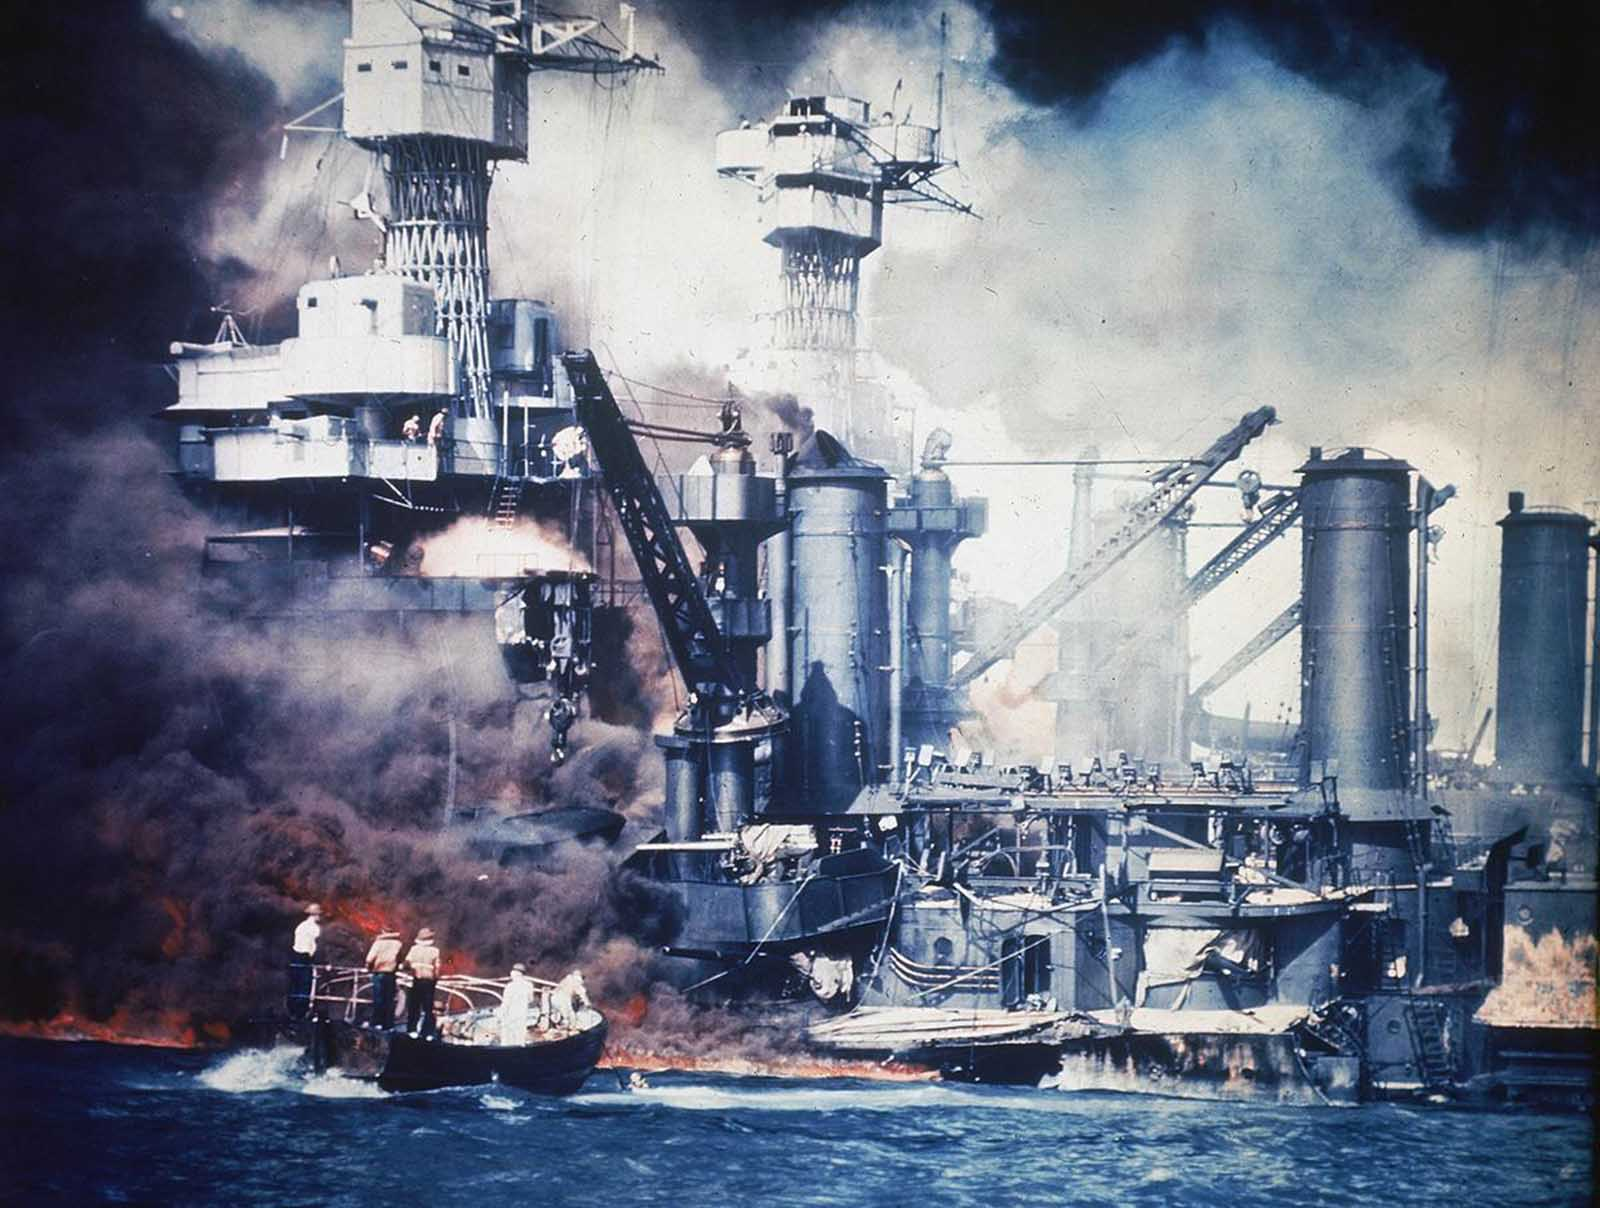 A small boat rescues a USS West Virginia crew member from the water after the Japanese bombing of Pearl Harbor, Hawaii, on December 7, 1941. Two men can be seen on the superstructure, upper center. The mast of the USS Tennessee is beyond the burning West Virginia.